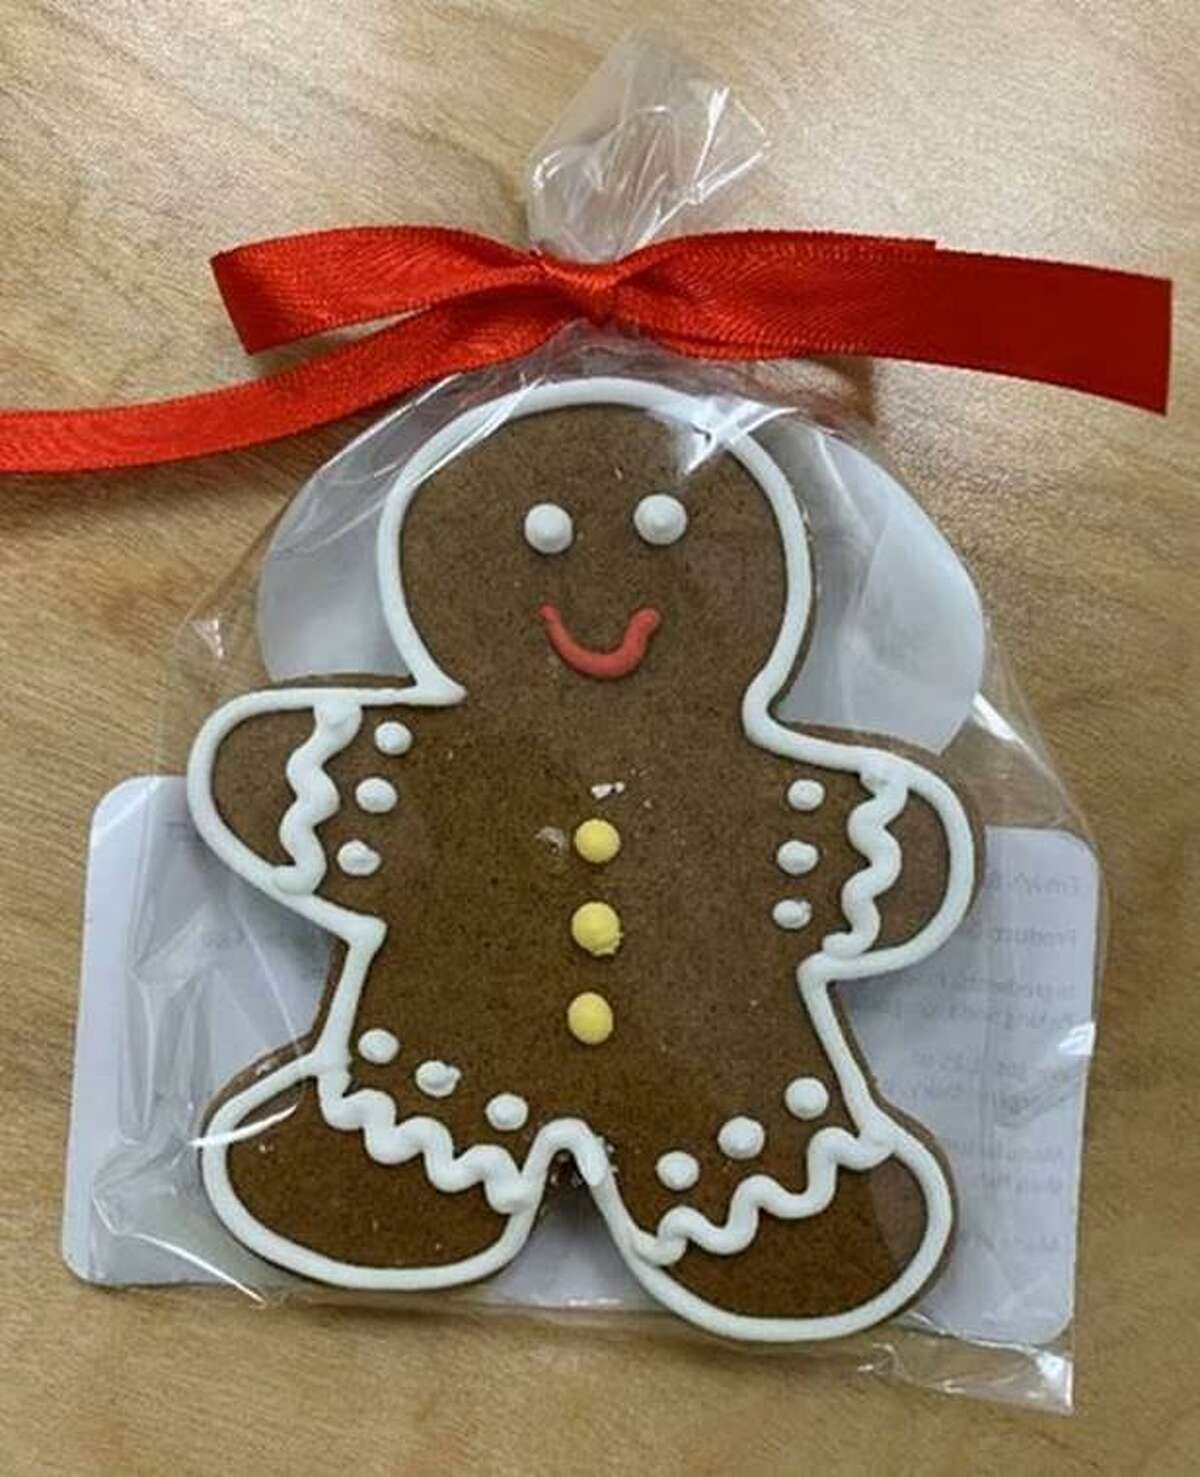 A gingerbread cookie with royal icing, similar to the 500 Emily DeCruze recently baked for Amazon's Trumbull employees.